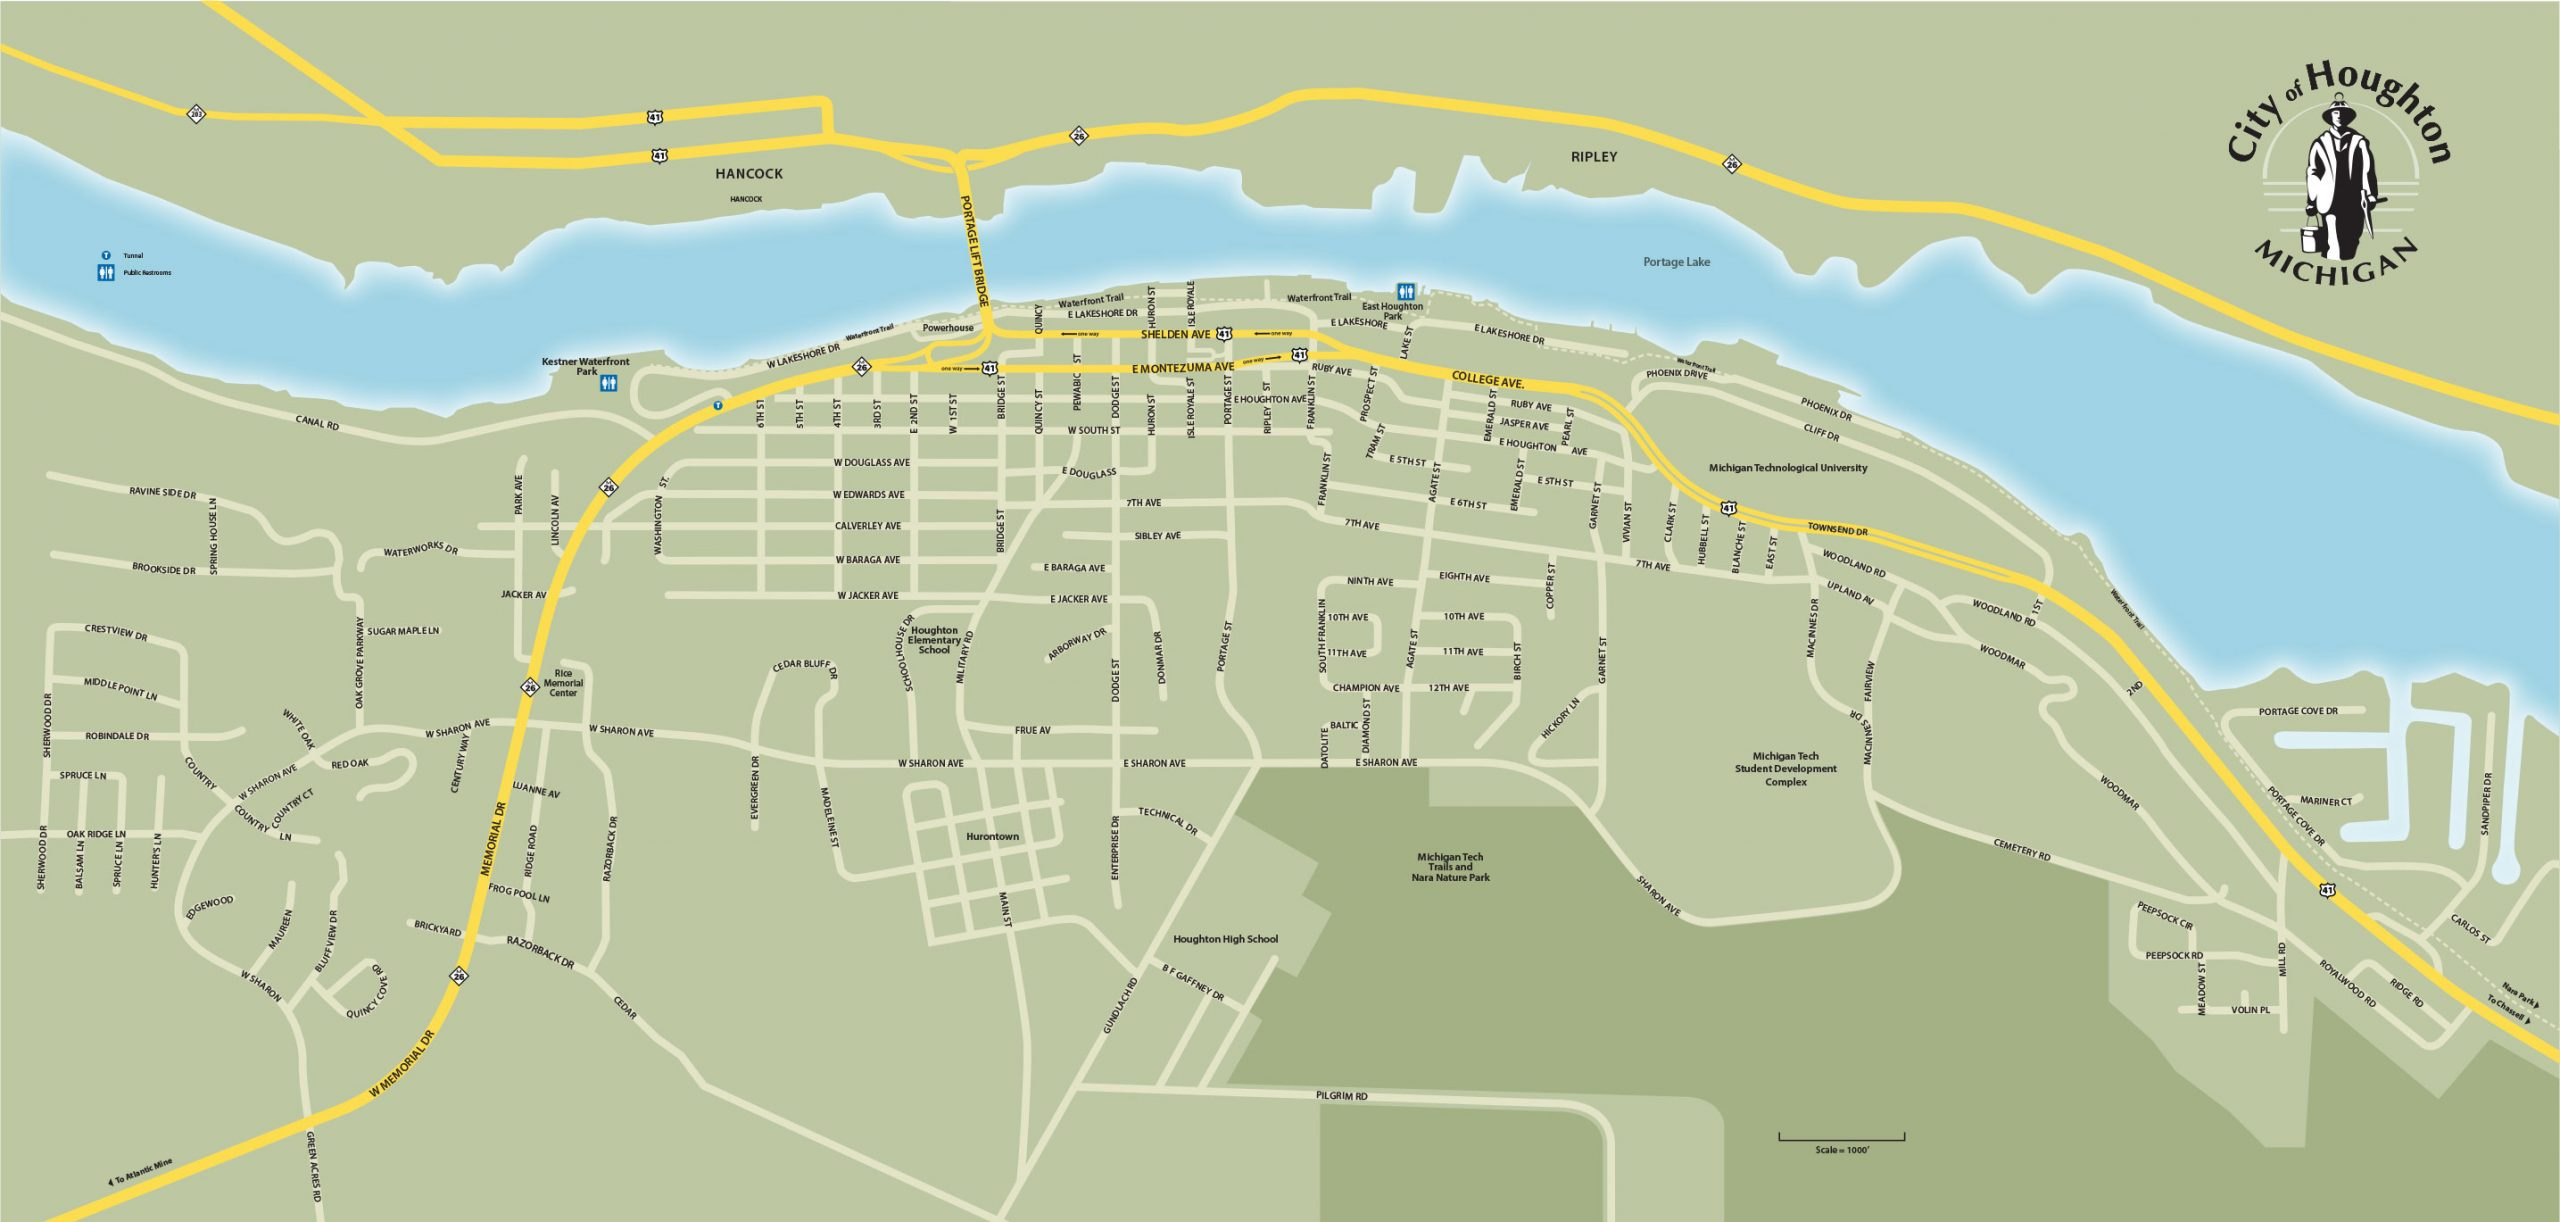 City of Houghton Street Map